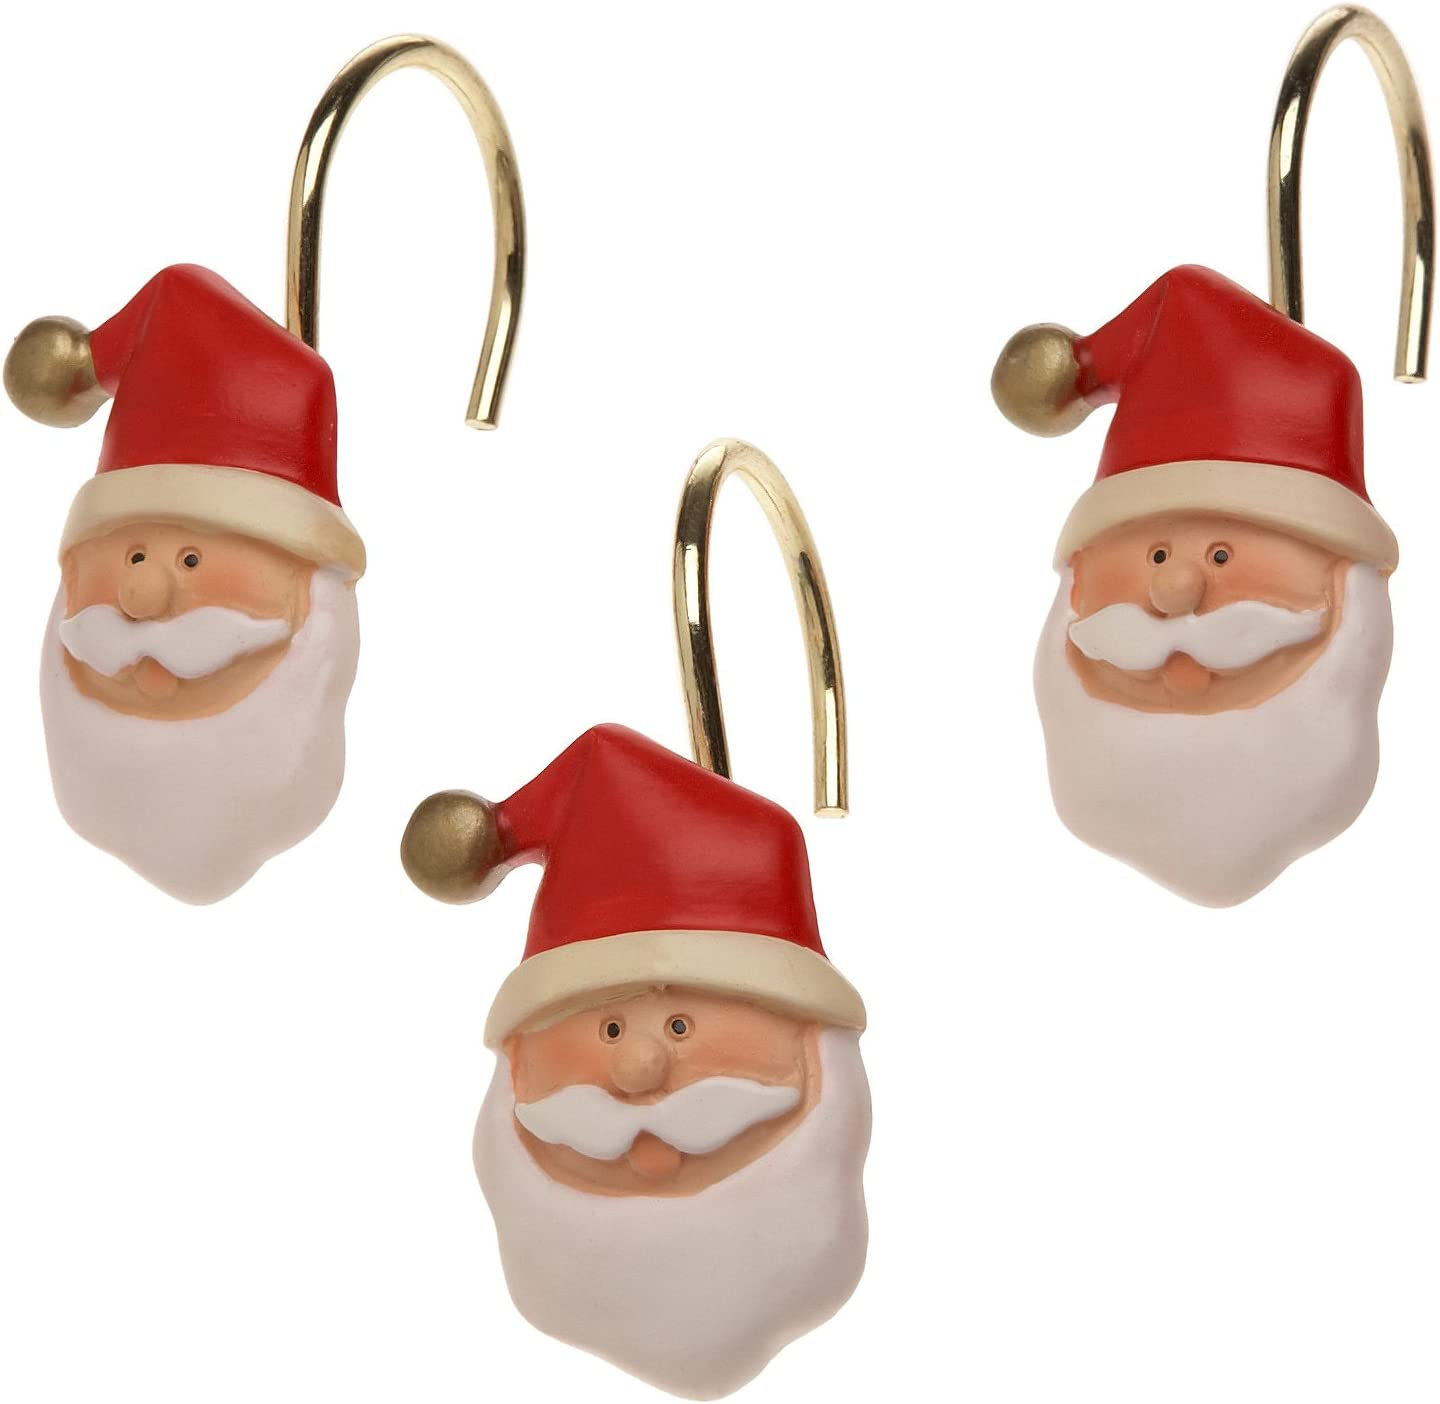 Carnation Home Fashions Santa Claus Ceramic Resin Shower Curtain Hooks-set of 12: Home & Kitchen